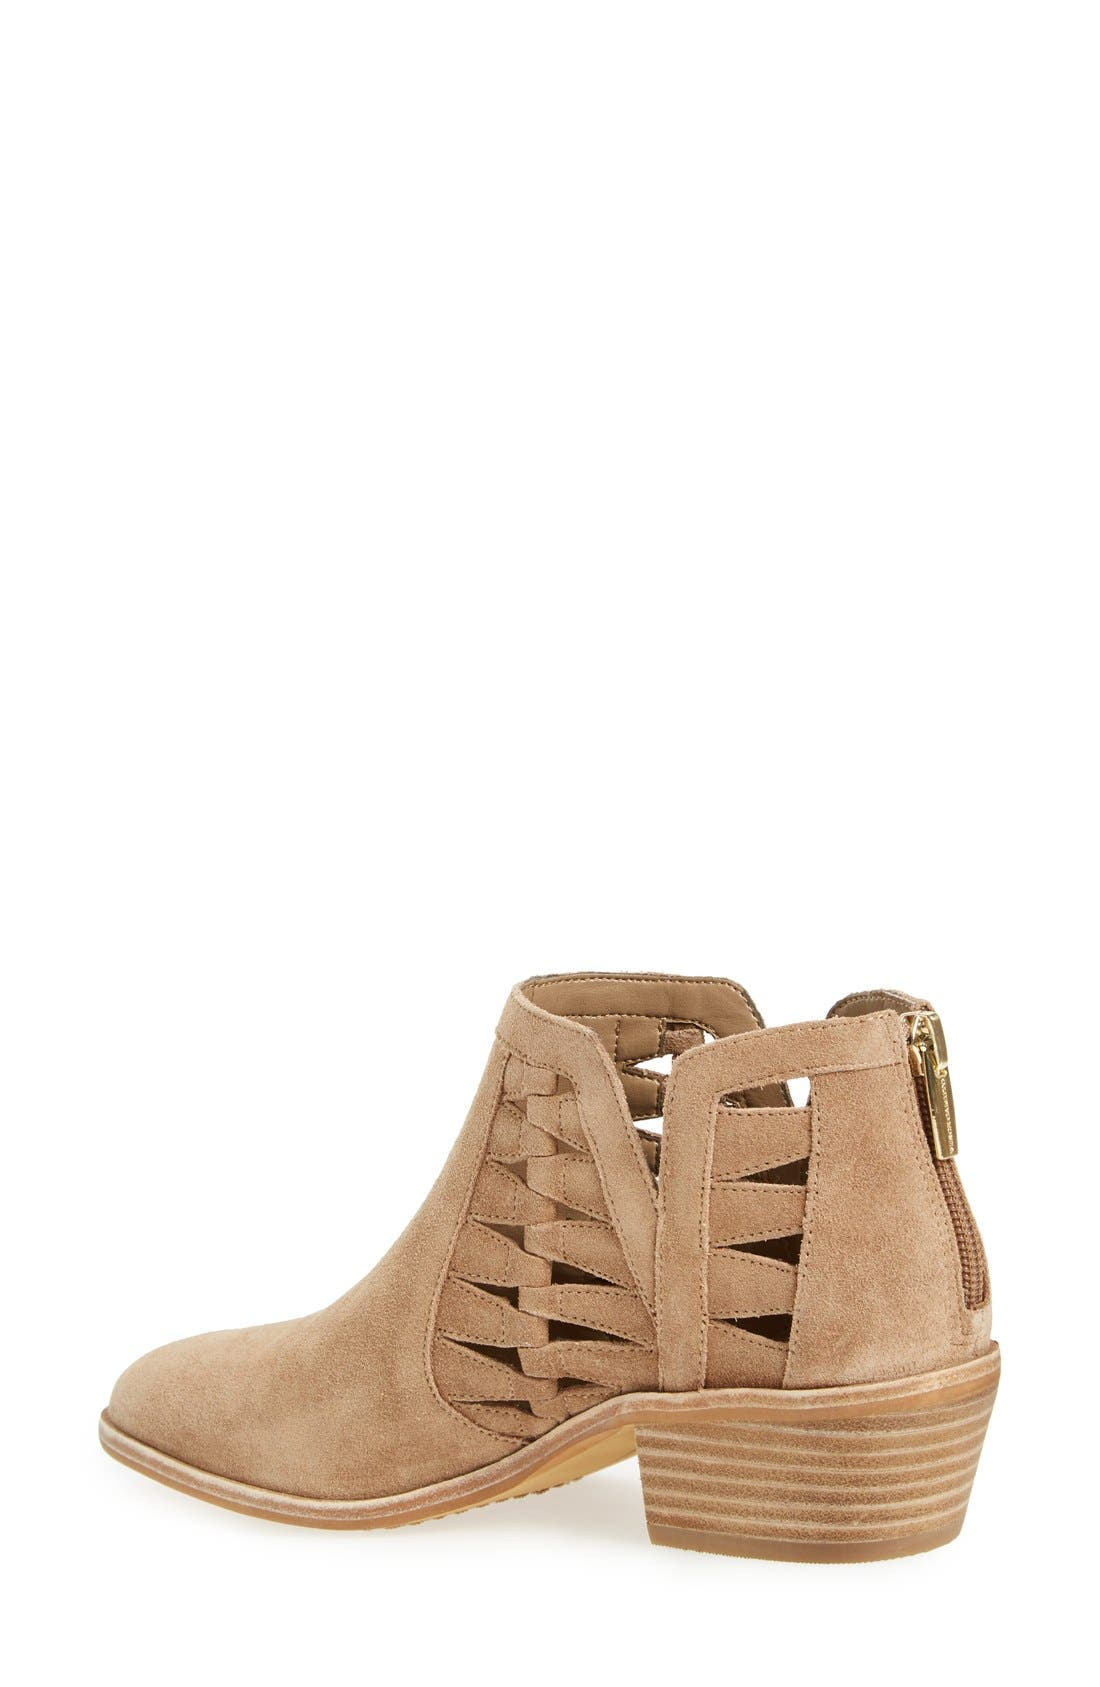 Alternate Image 2  - Vince Camuto 'Peera' Cutout Bootie (Women) (Nordstrom Exclusive)